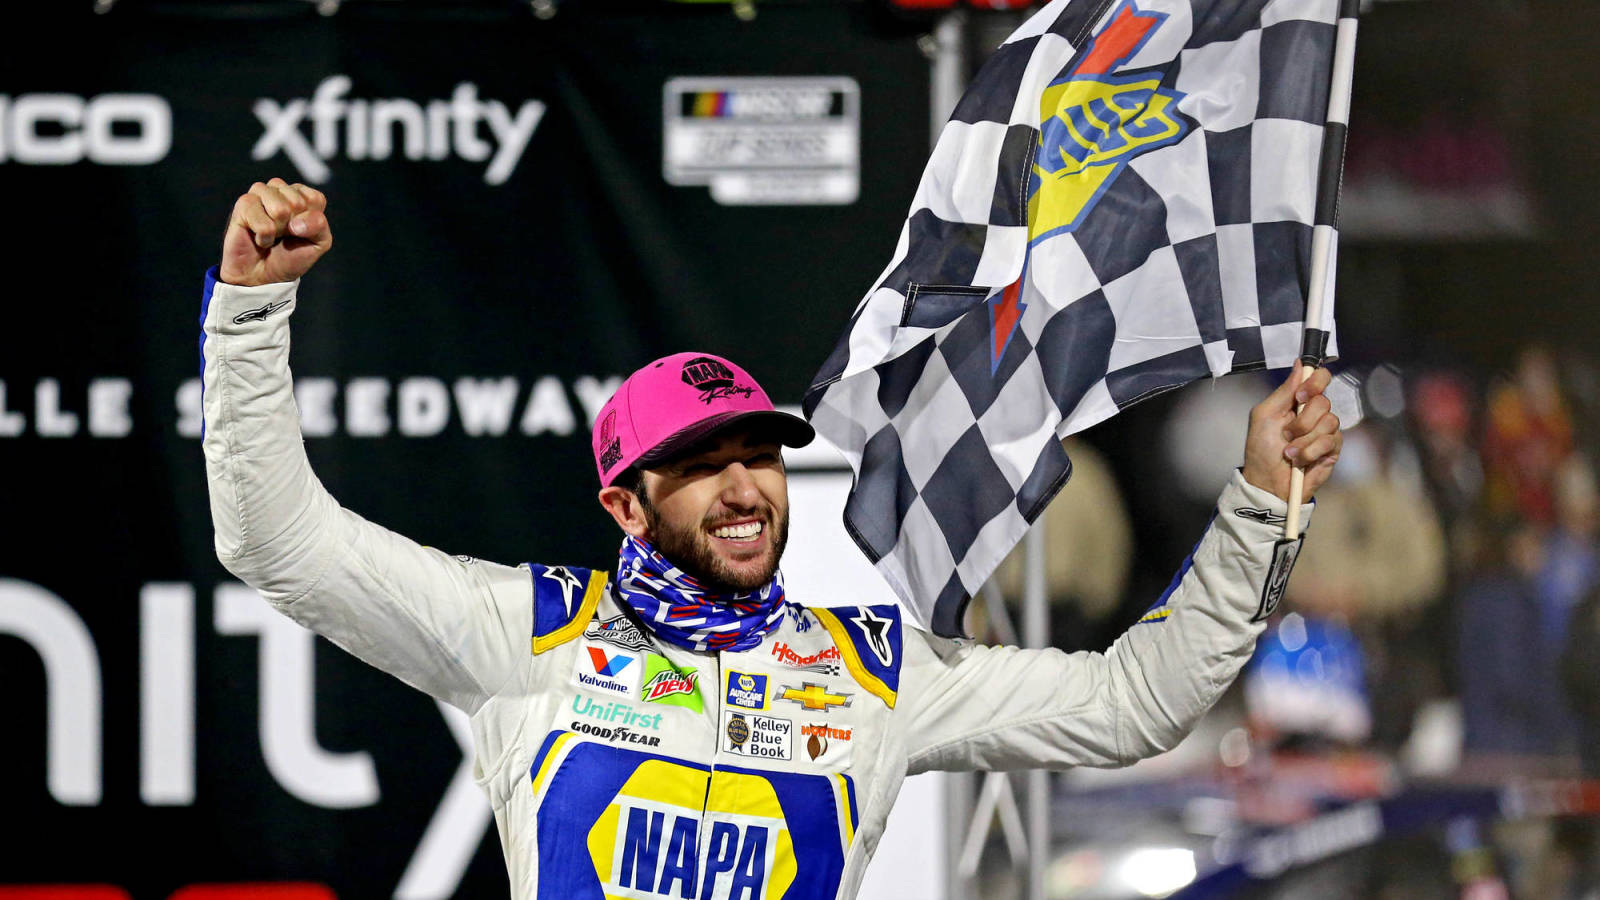 Sports world reacts to Chase Elliott winning first NASCAR Cup Series title